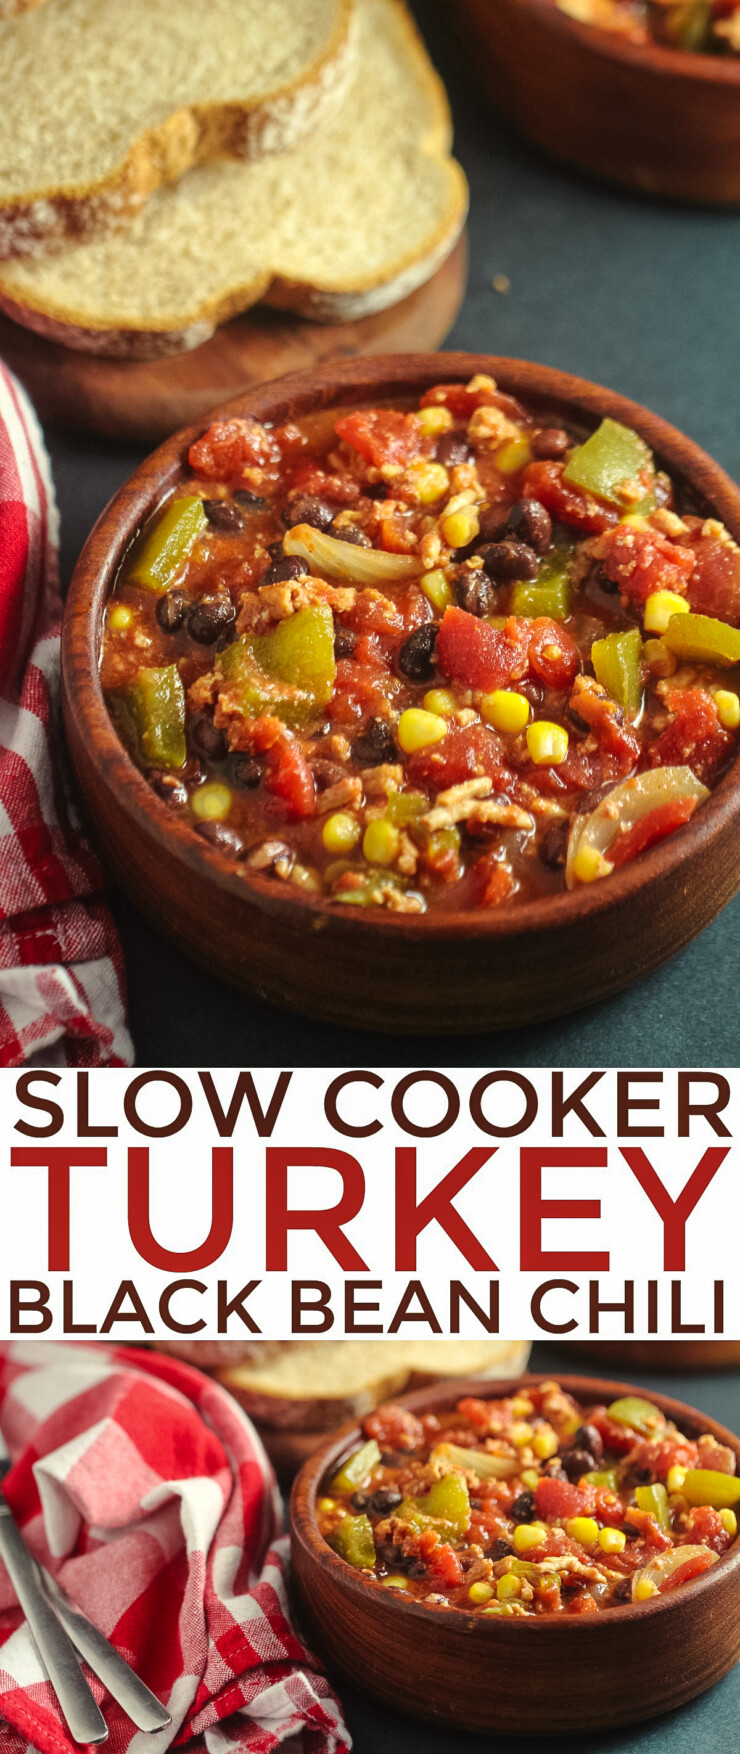 This Slow Cooker Turkey Black Bean Chili is an easy and nutritious meal you can prep ahead and freeze for easy weekday meals.